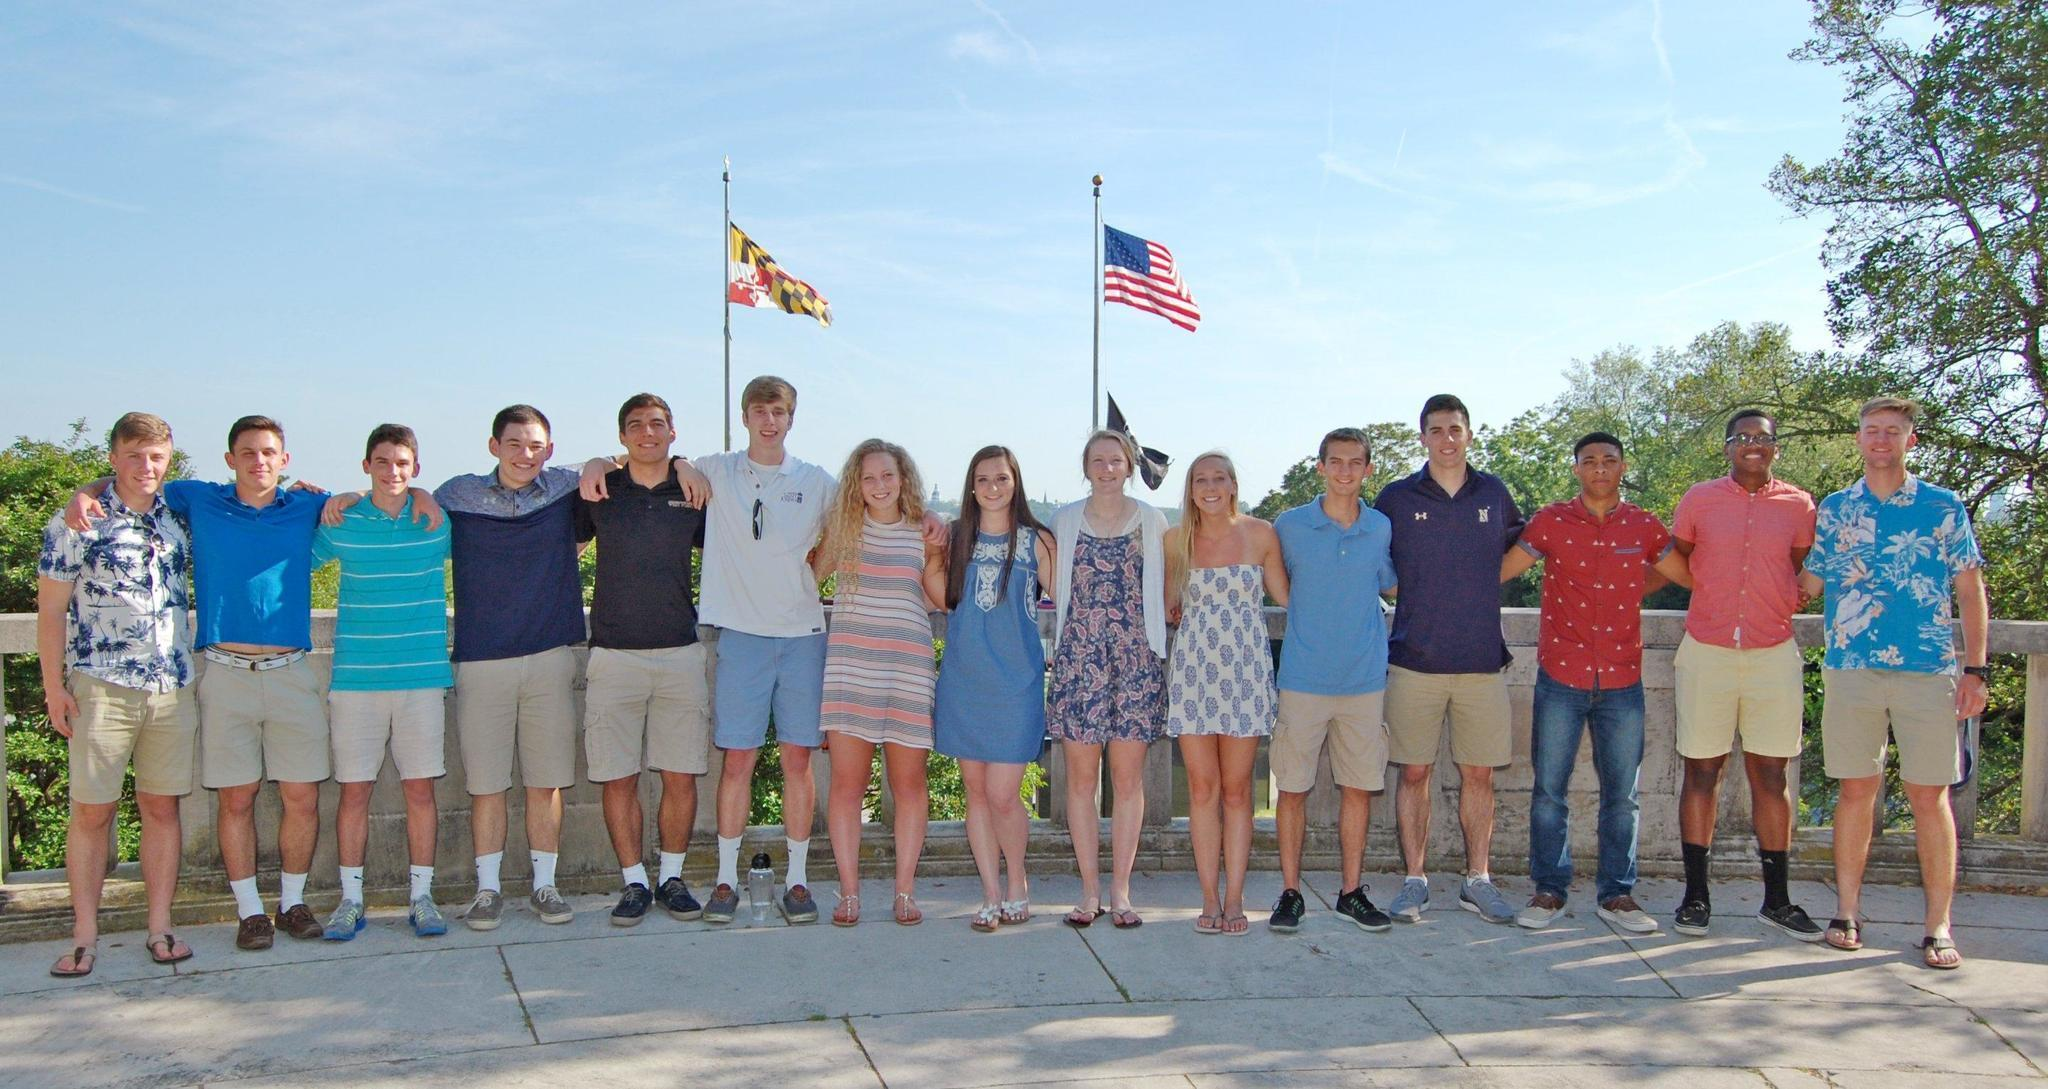 Determined To Serve, Anne Arundel Teens Reflect On Their Chosen Paths